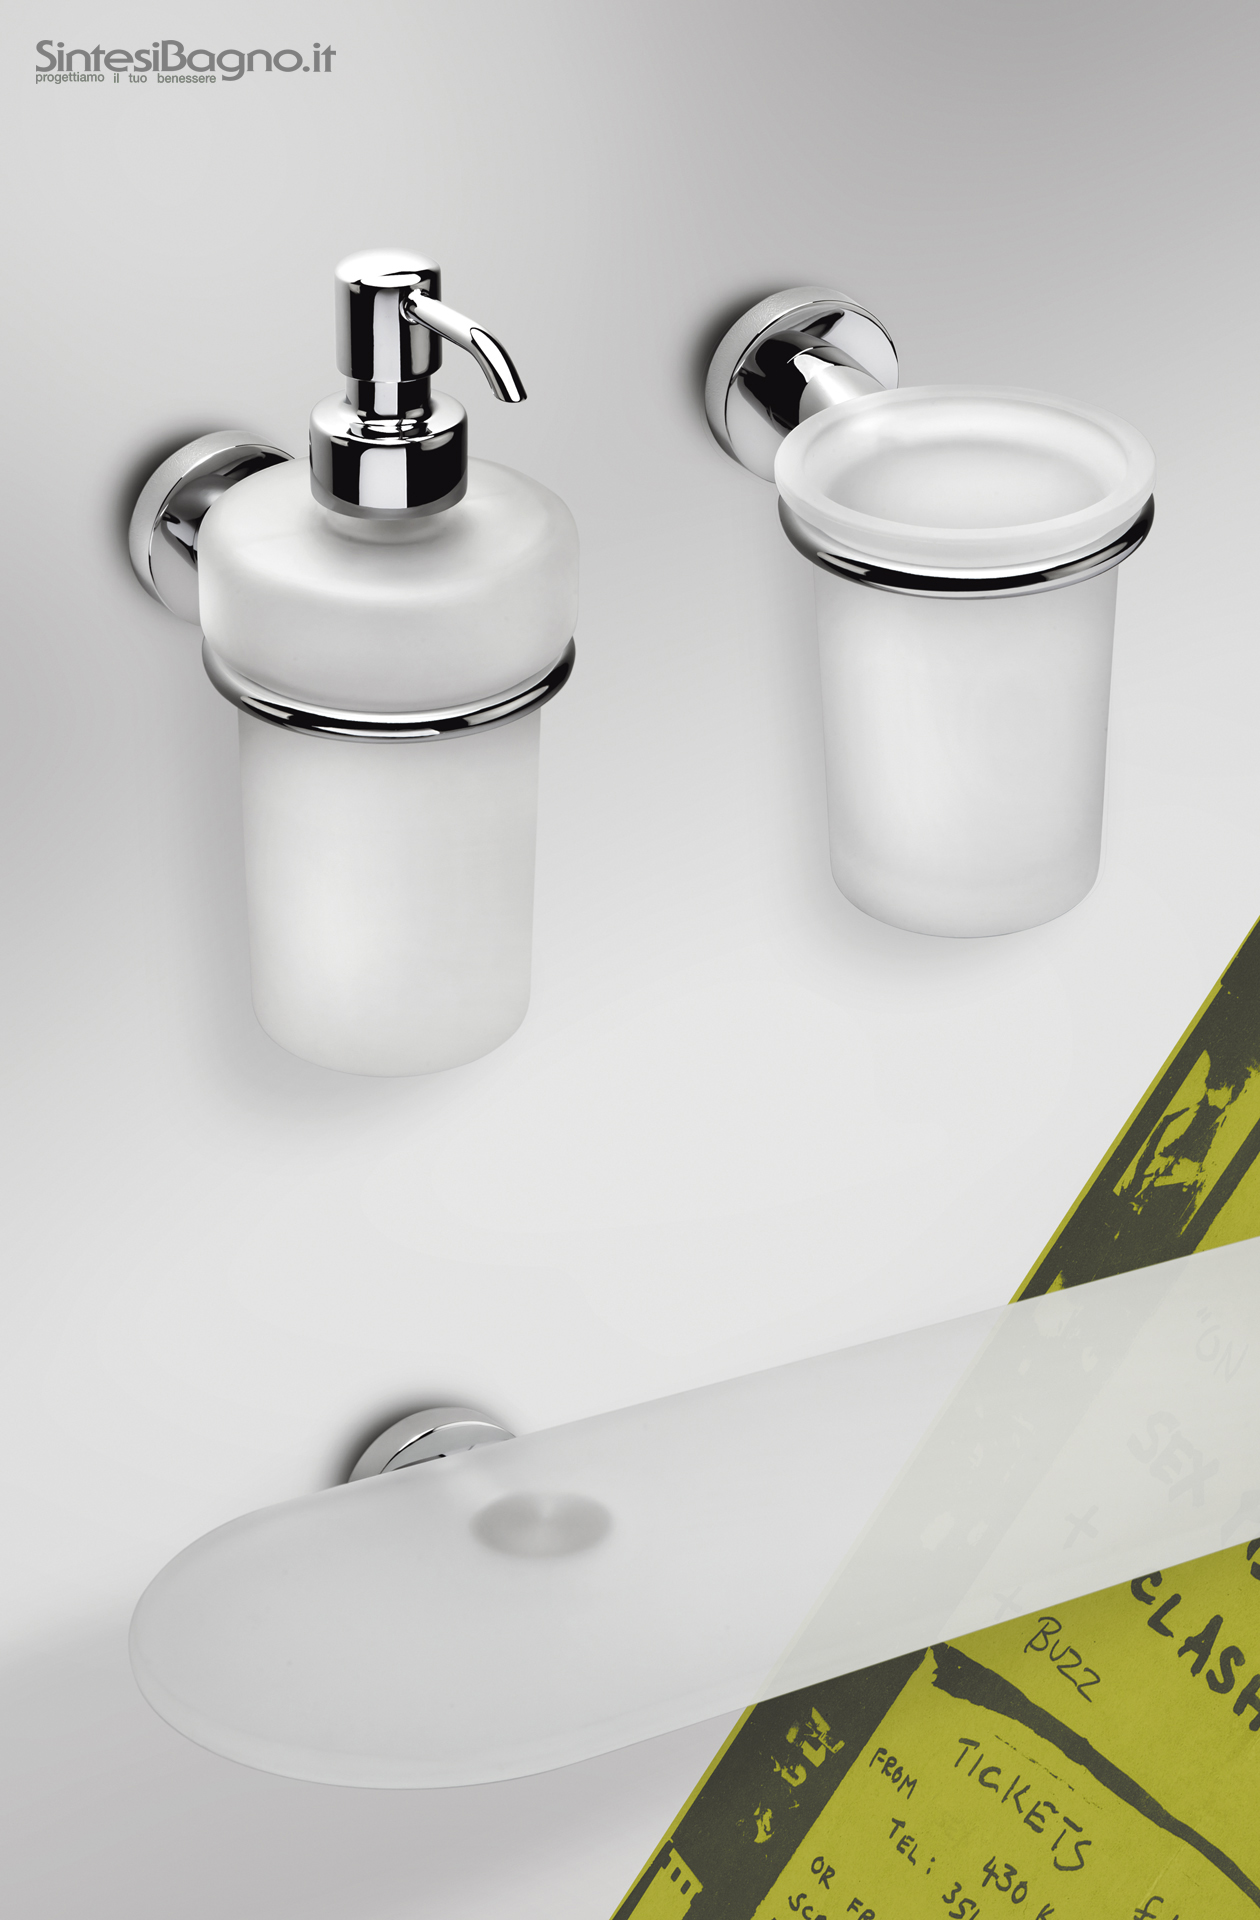 ACCESSORI BAGNO economici - COLOMBO Design serie BASIC - Shop online ...